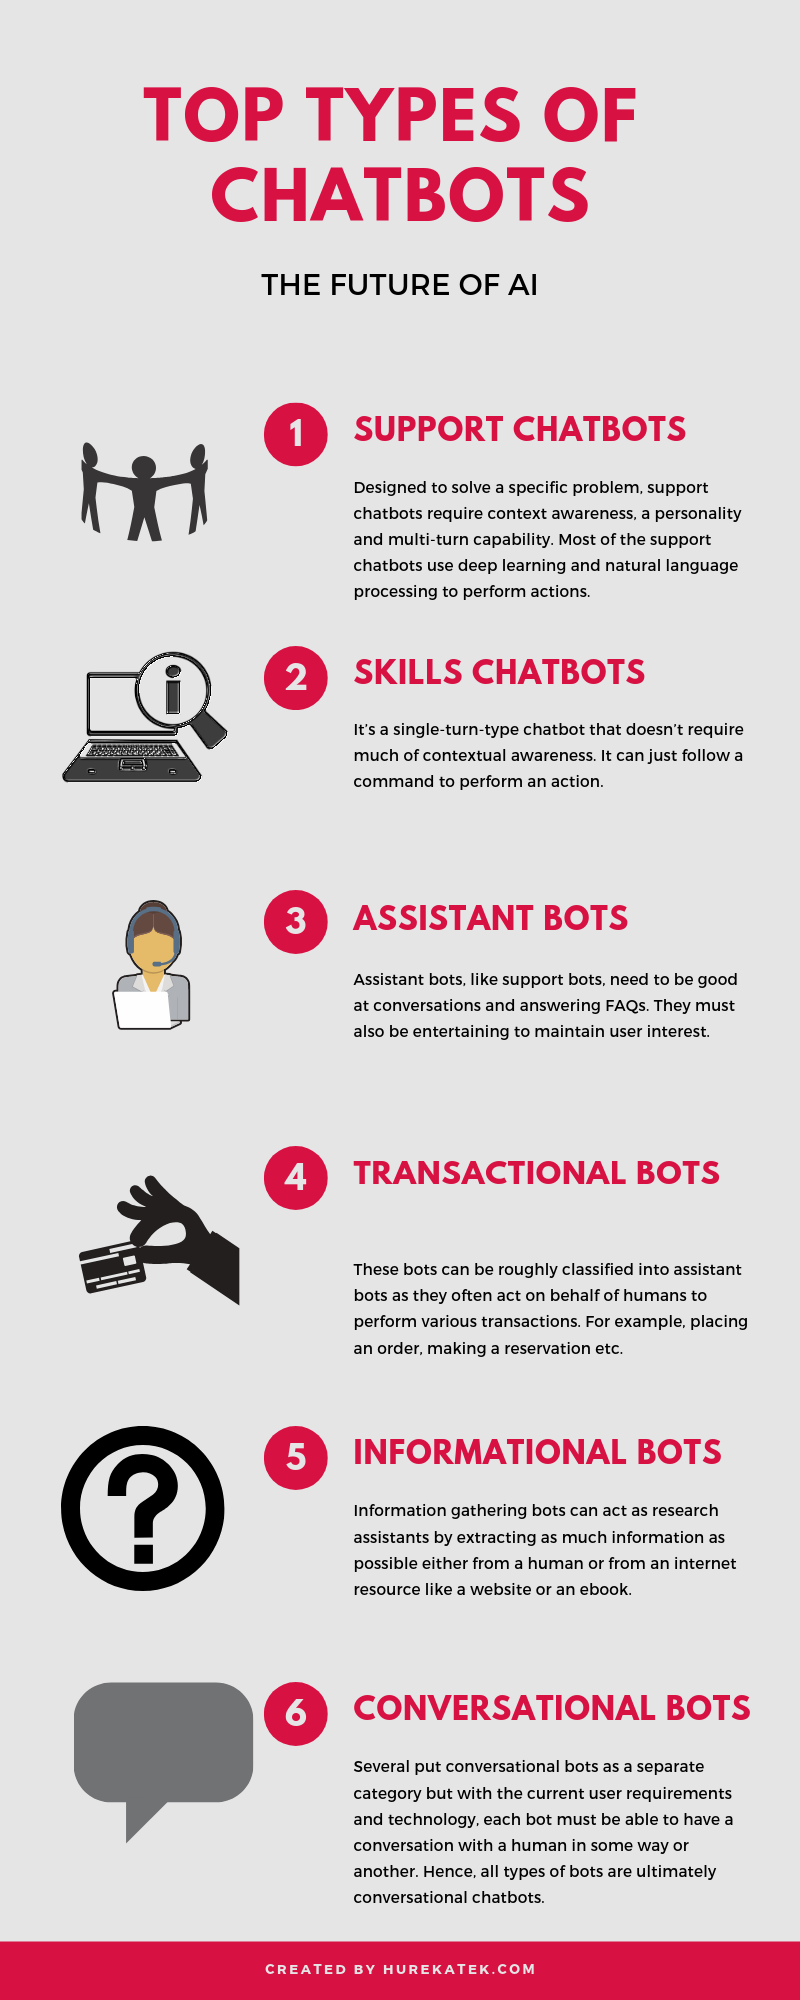 Chatbots are the future of AI and much has been said about